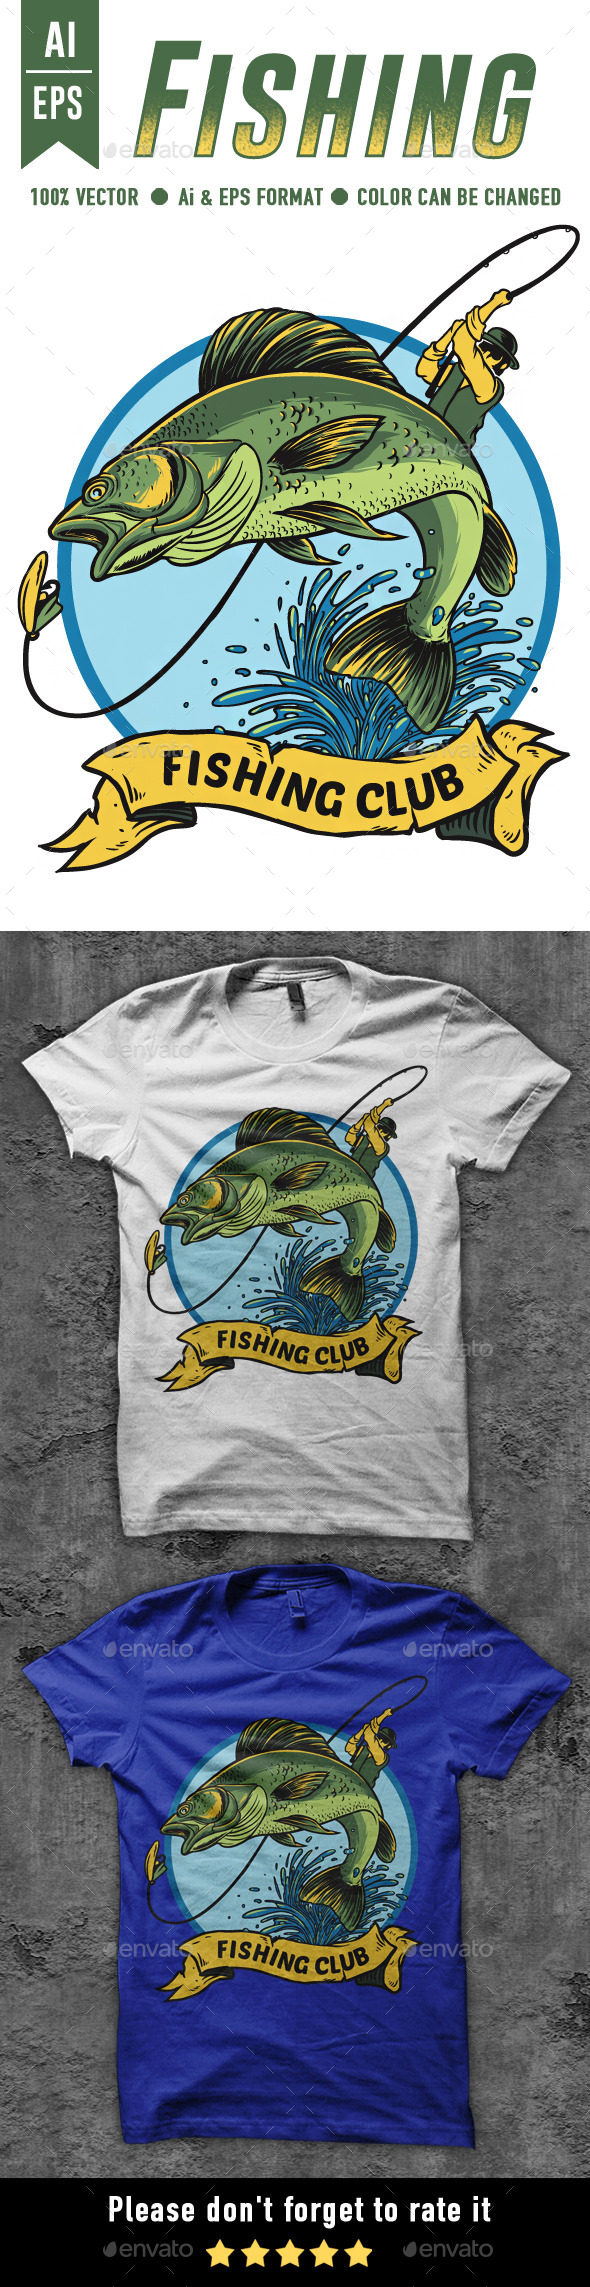 GraphicRiver Fishing T-shirt Design 10269712